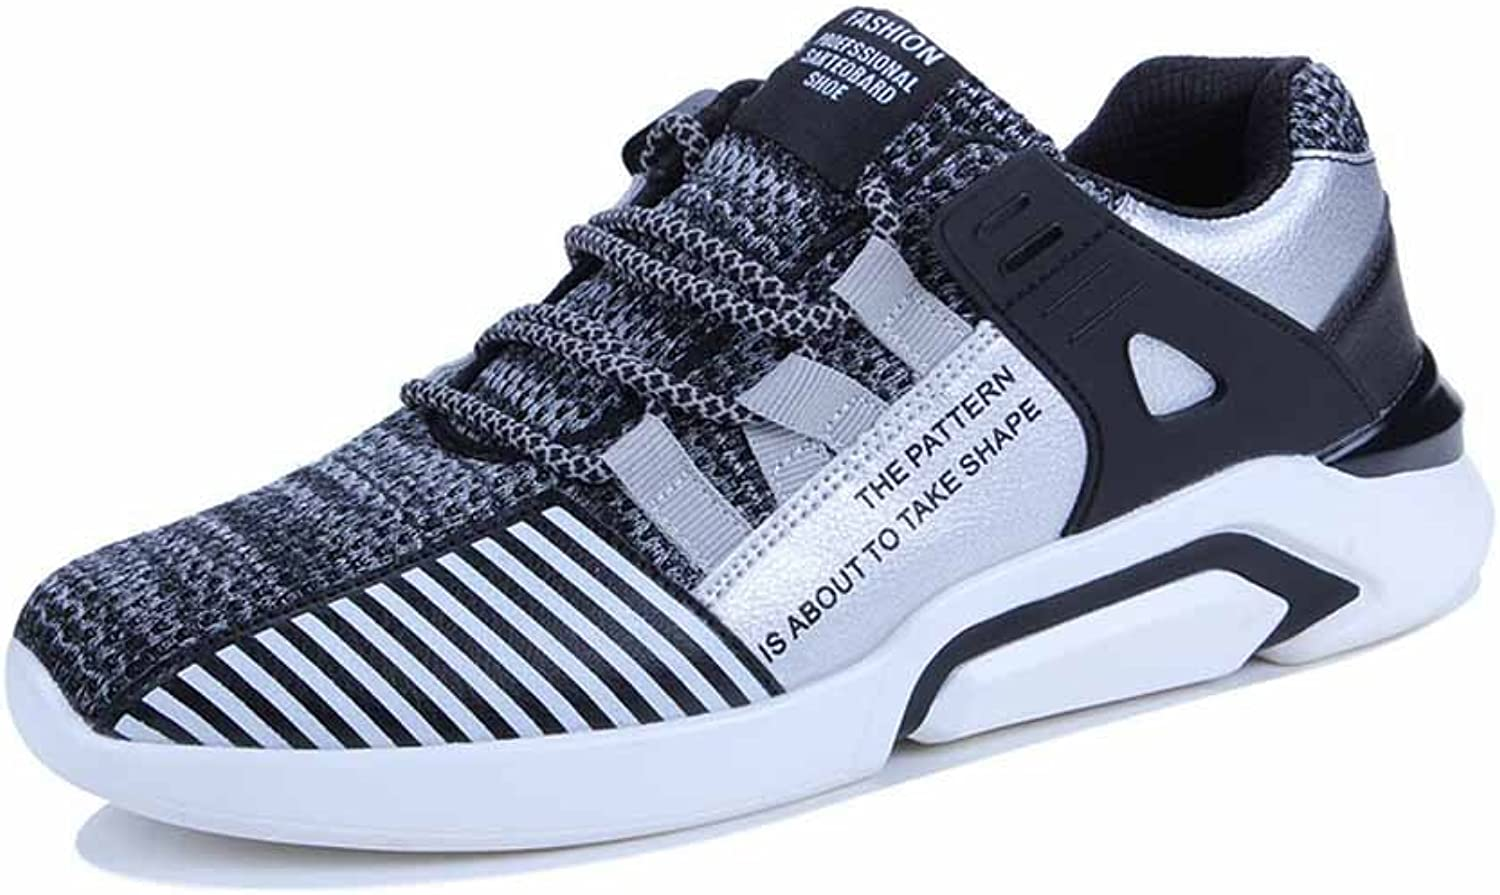 GLSHI Men Mesh Breathable Running shoes Simple Athletic shoes Lightweight Fitness shoes